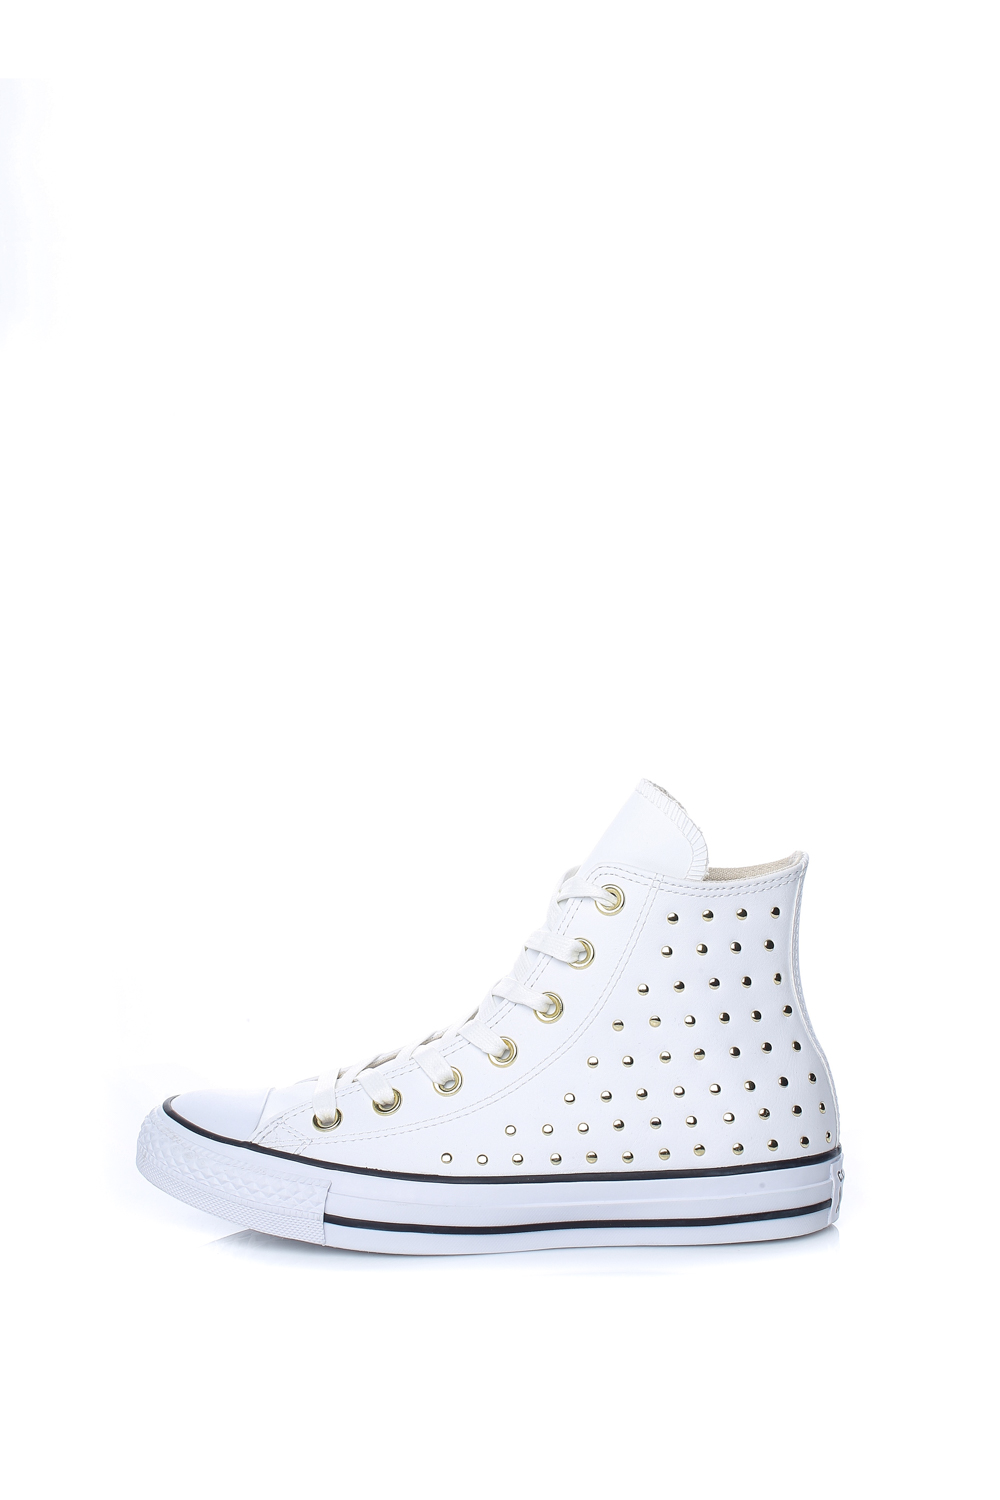 Collective Online CONVERSE – Γυναικεία ψηλά sneakers CONVERSE CHUCK TAYLOR  ALL STAR λευκά με τρουξ aa1591b8070